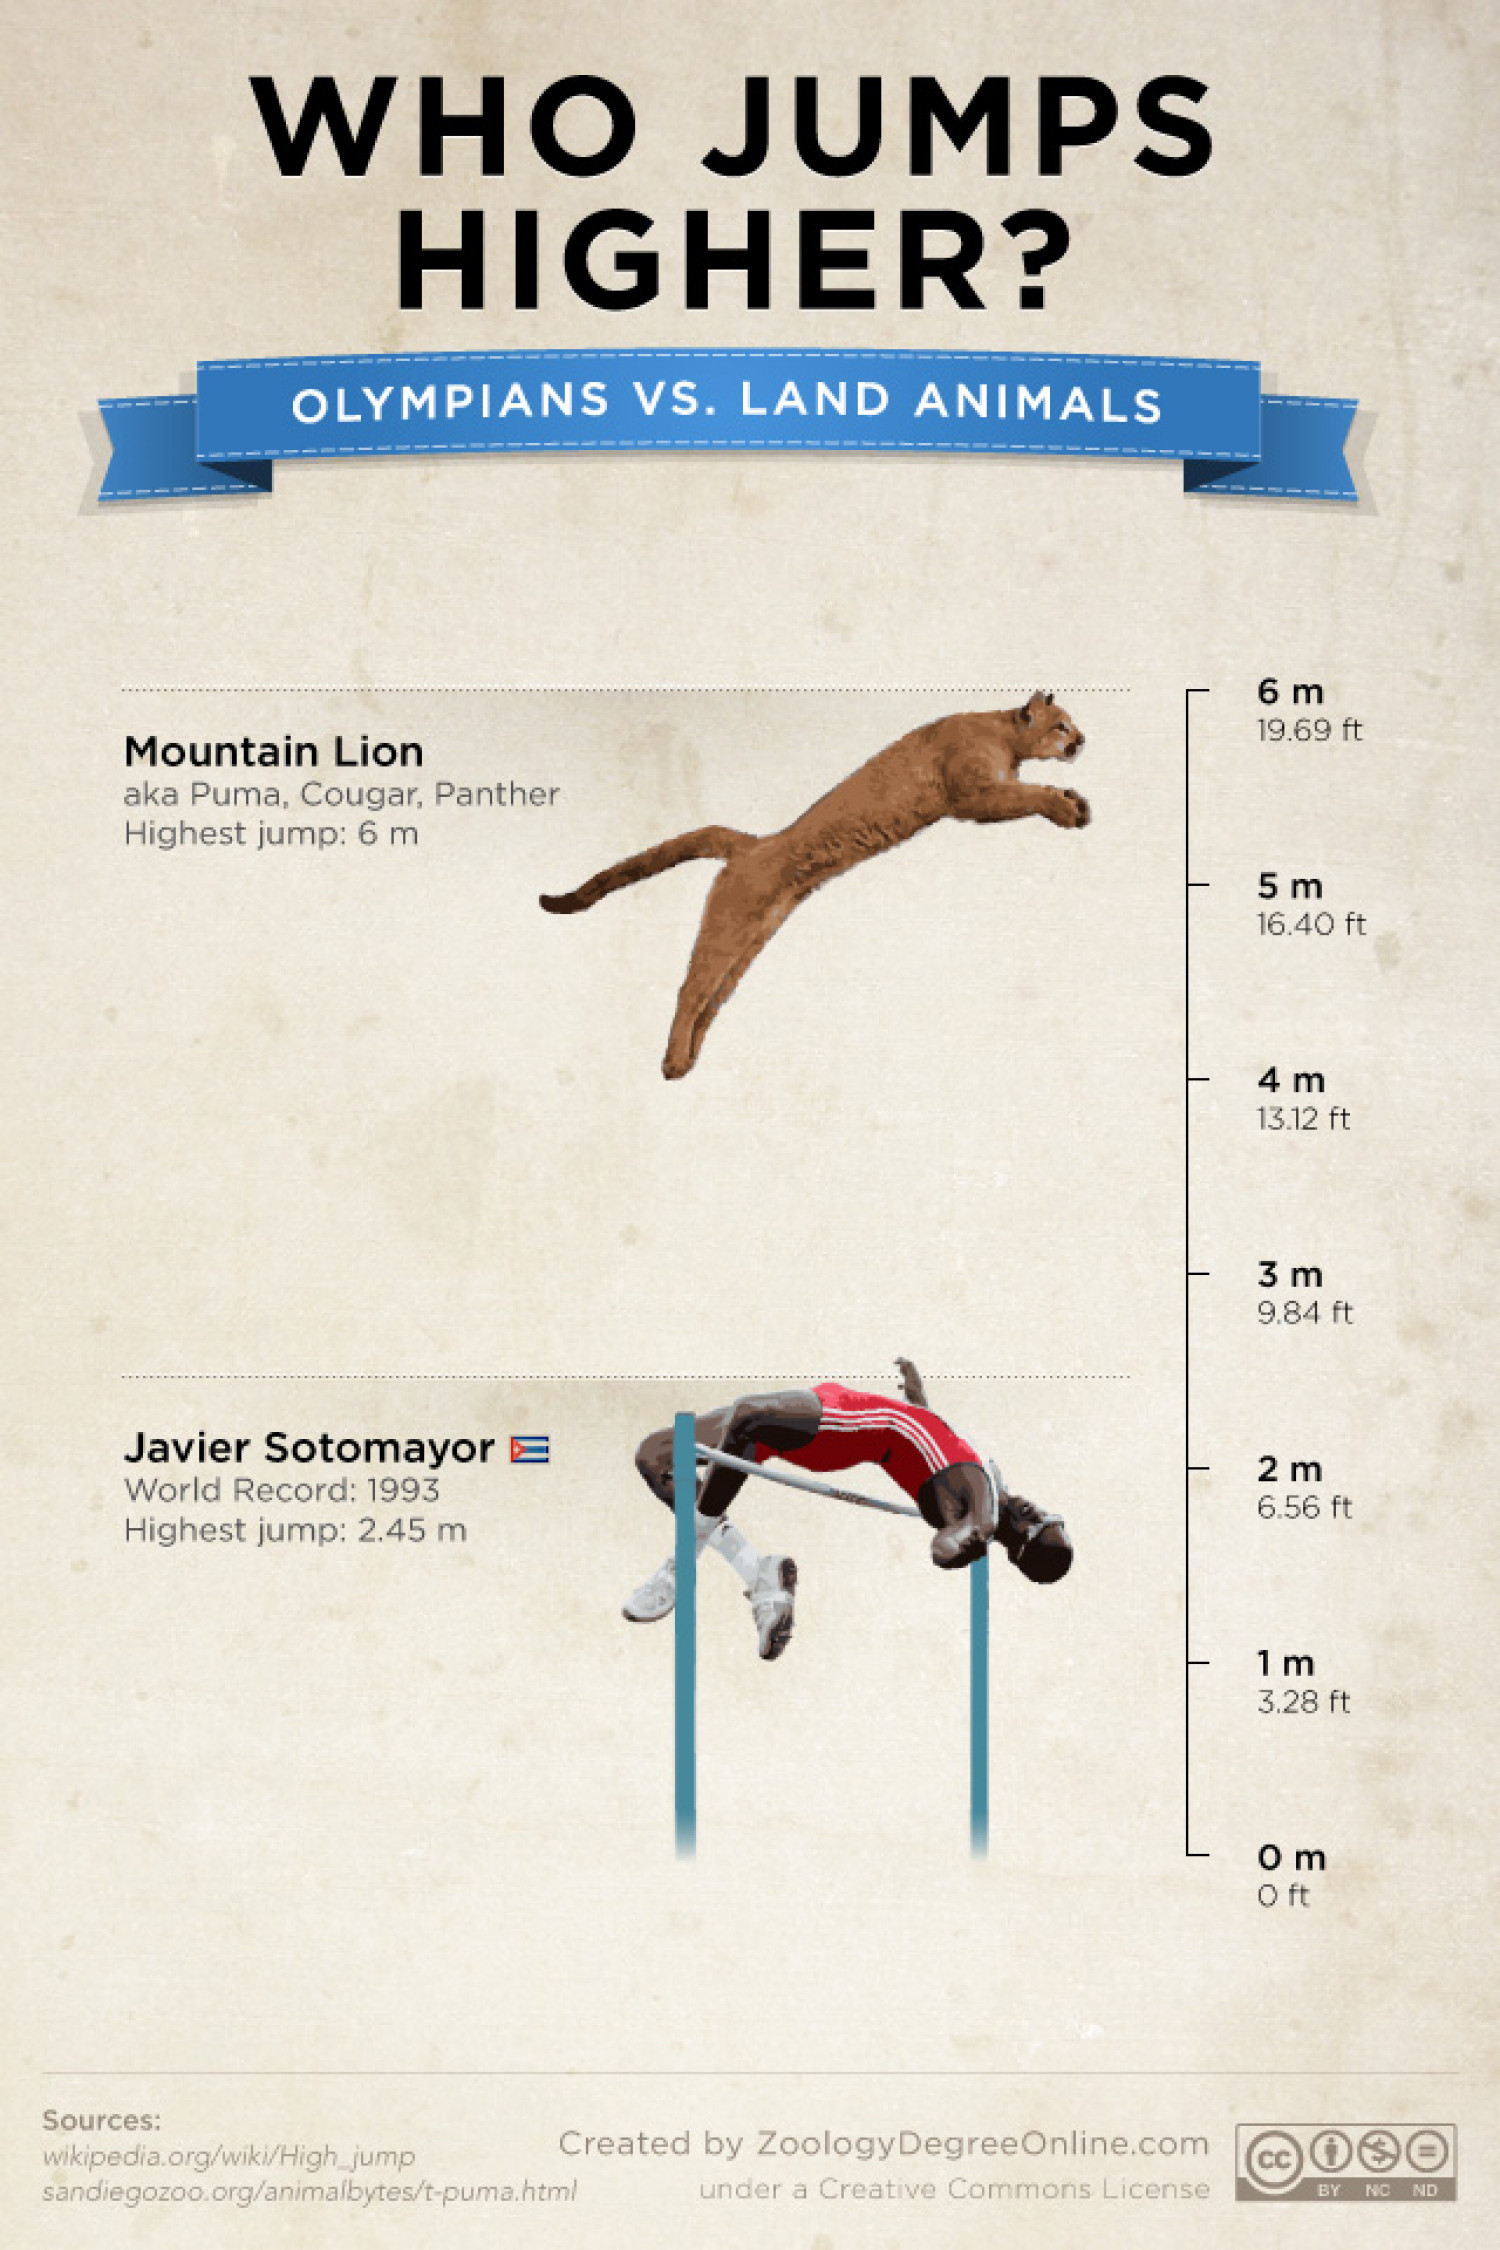 Animals Vs Olympians - Who Jumps Higher? Infographic